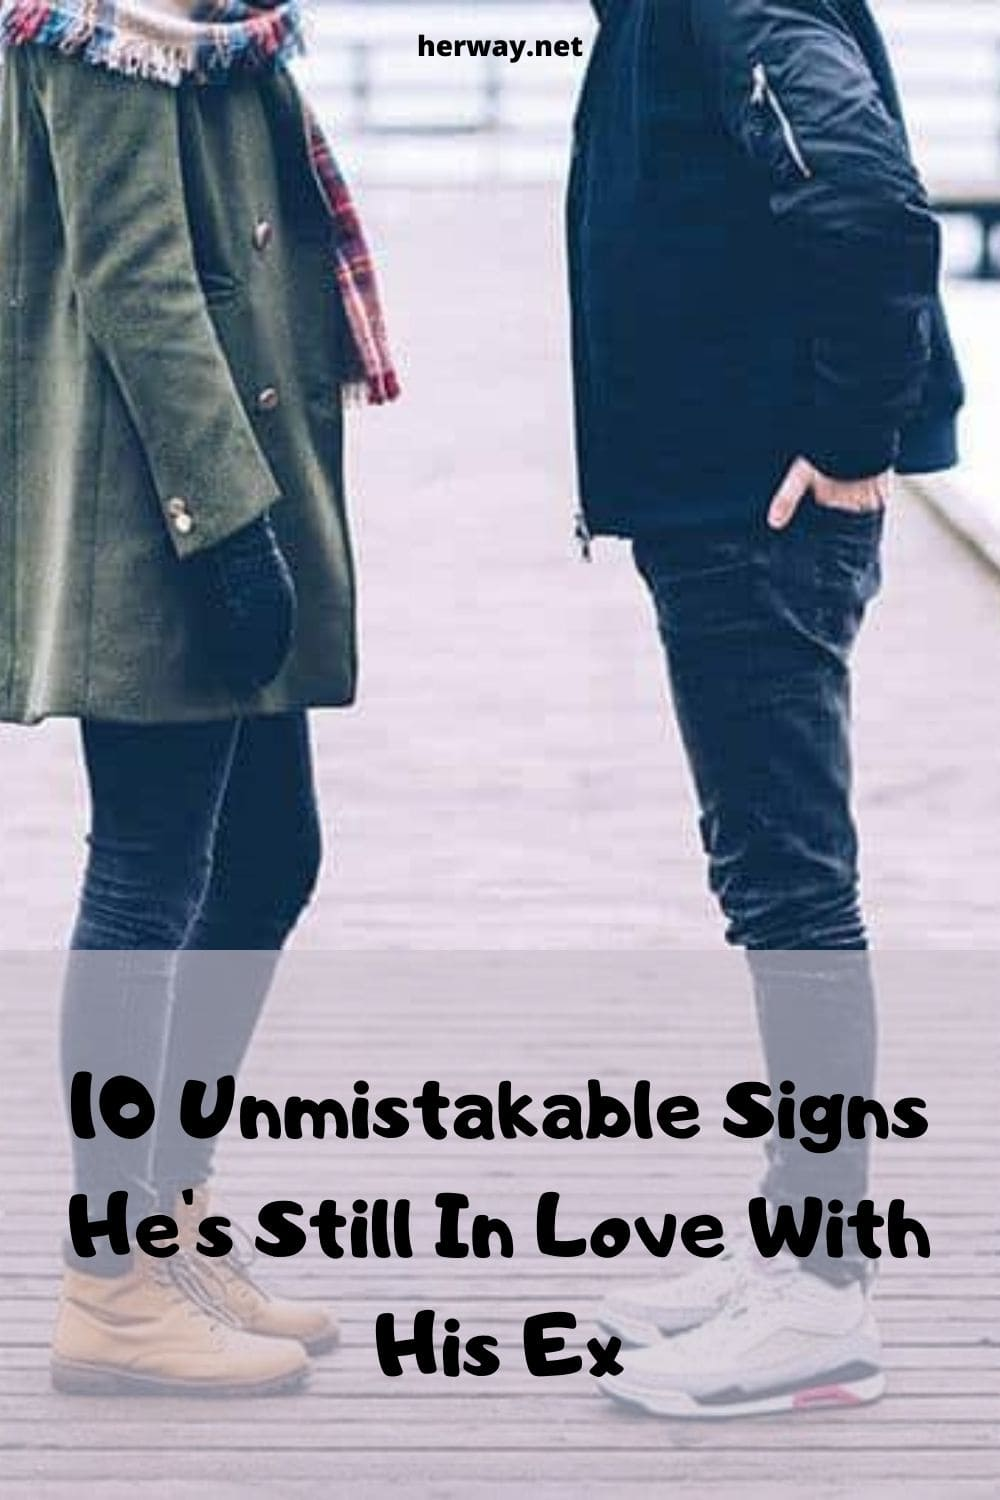 10 Unmistakable Signs He's Still In Love With His Ex